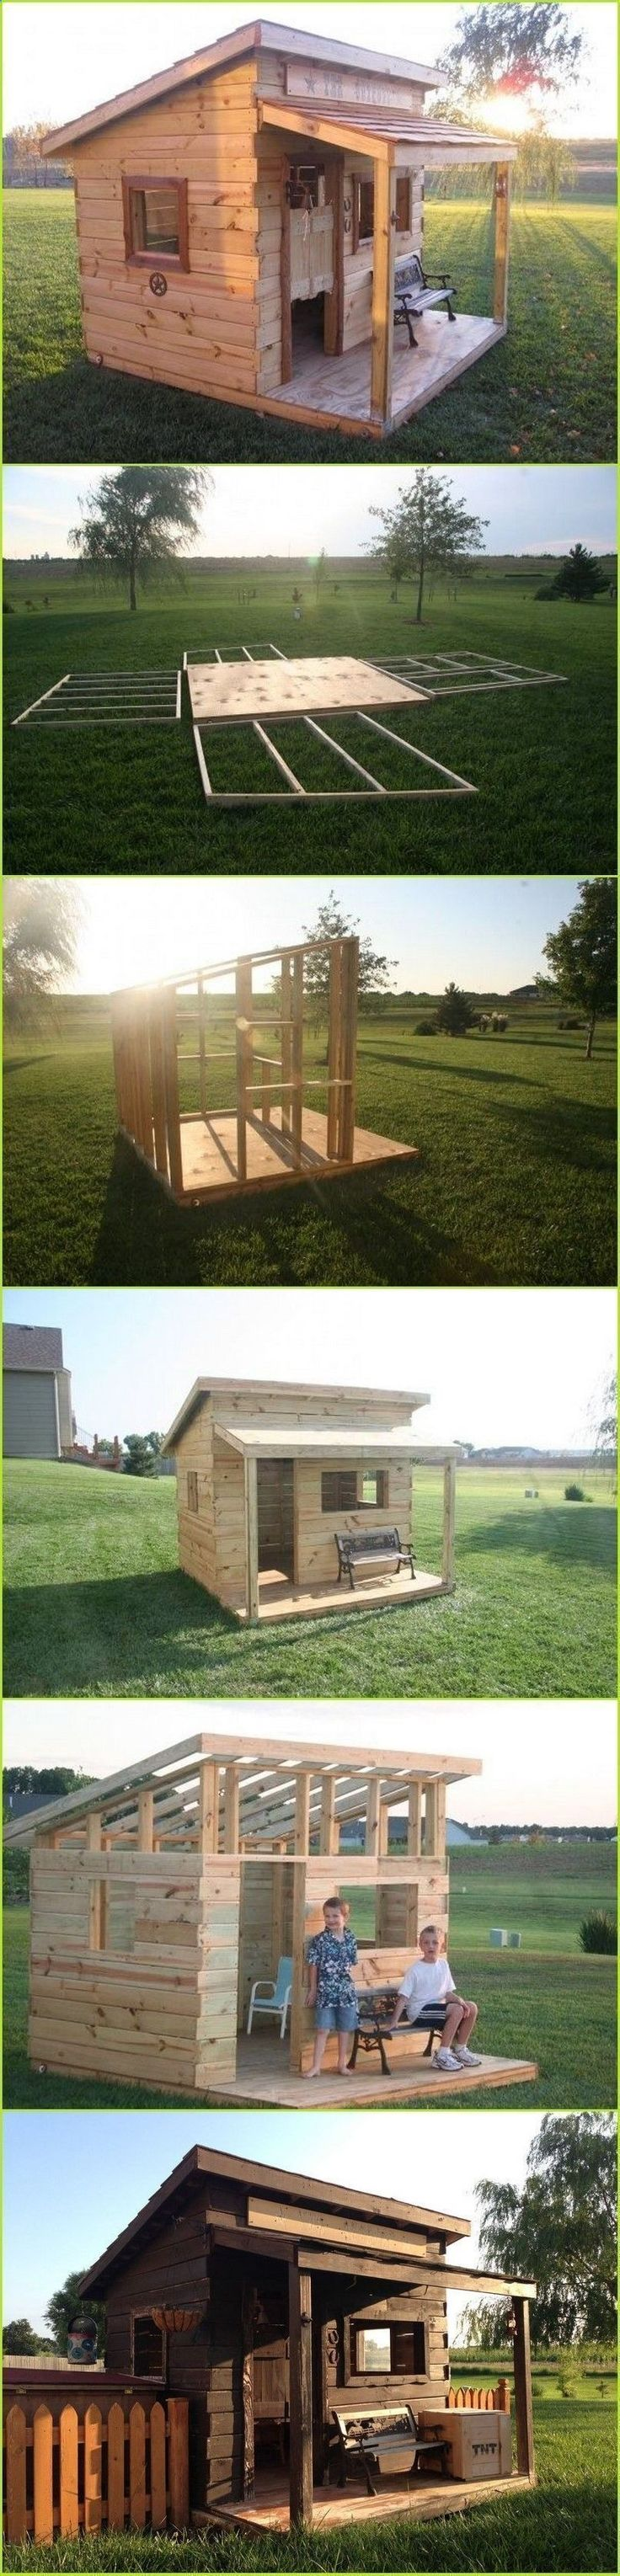 Plans of Woodworking Diy Projects - Shed Plans - DIY Kids Fort which could be readily altered to make a nice LARP or Ren Faire building. - Now You Can Build ANY Shed In A Weekend Even If You've Zero Woodworking Experience! #diyshedplans #buildashedkit #diyshedkit Get A Lifetime Of Project Ideas & Inspiration!